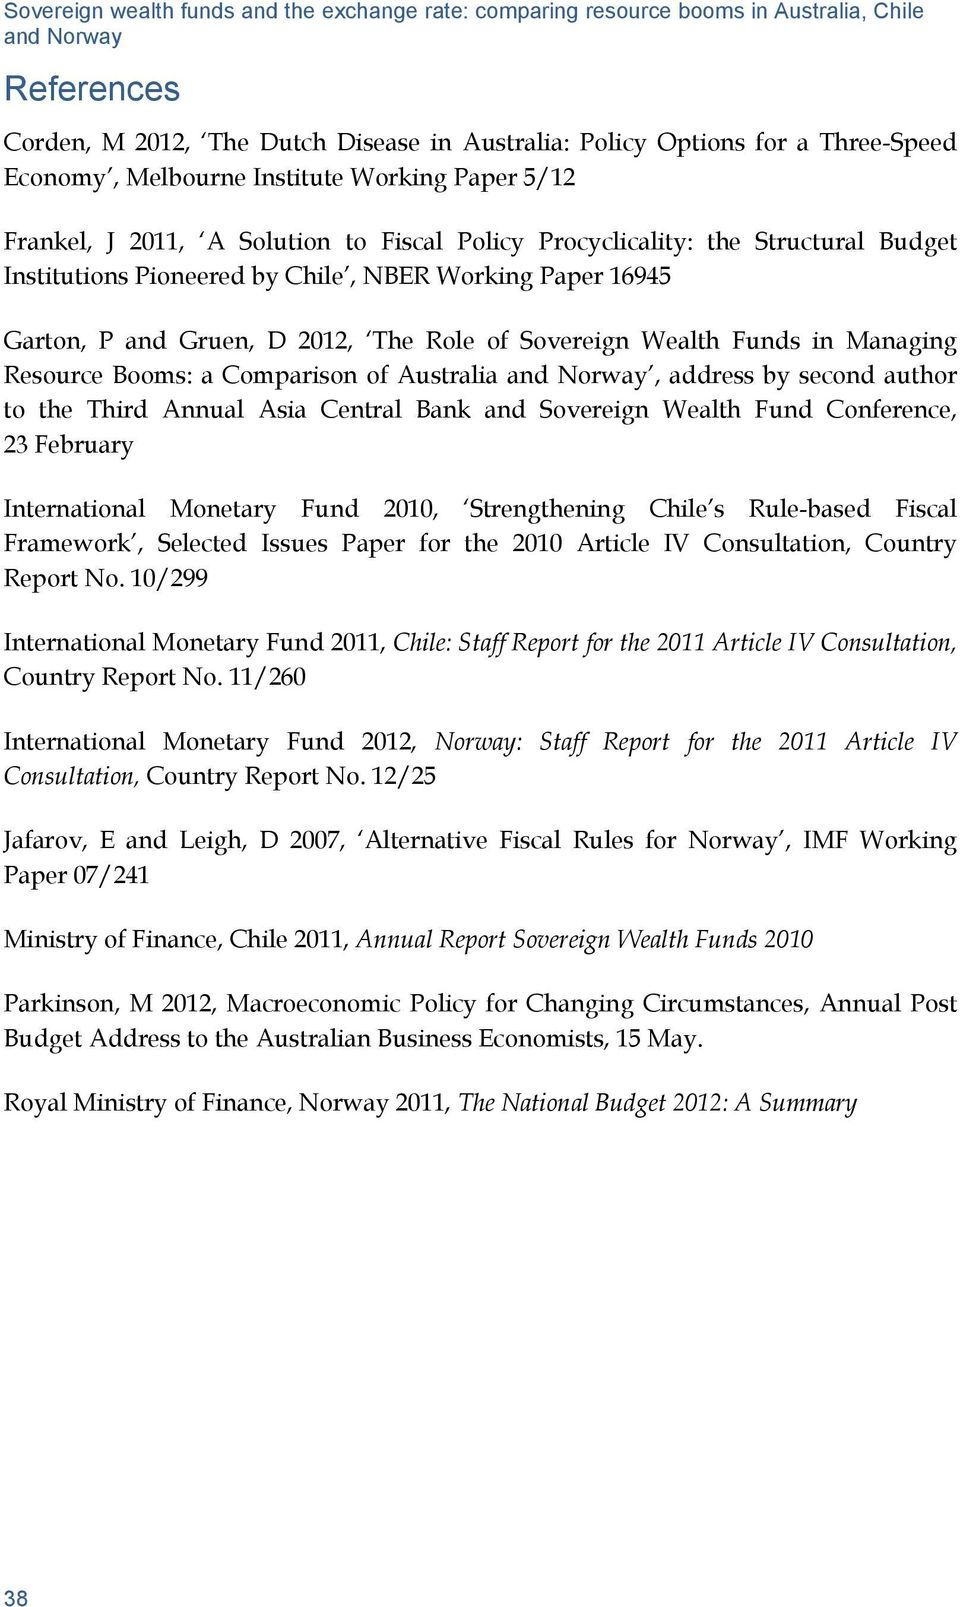 author to the Third Annual Asia Central Bank and Sovereign Wealth Fund Conference, 23 February International Monetary Fund 21, Strengthening s Rule-based Fiscal Framework, Selected Issues Paper for